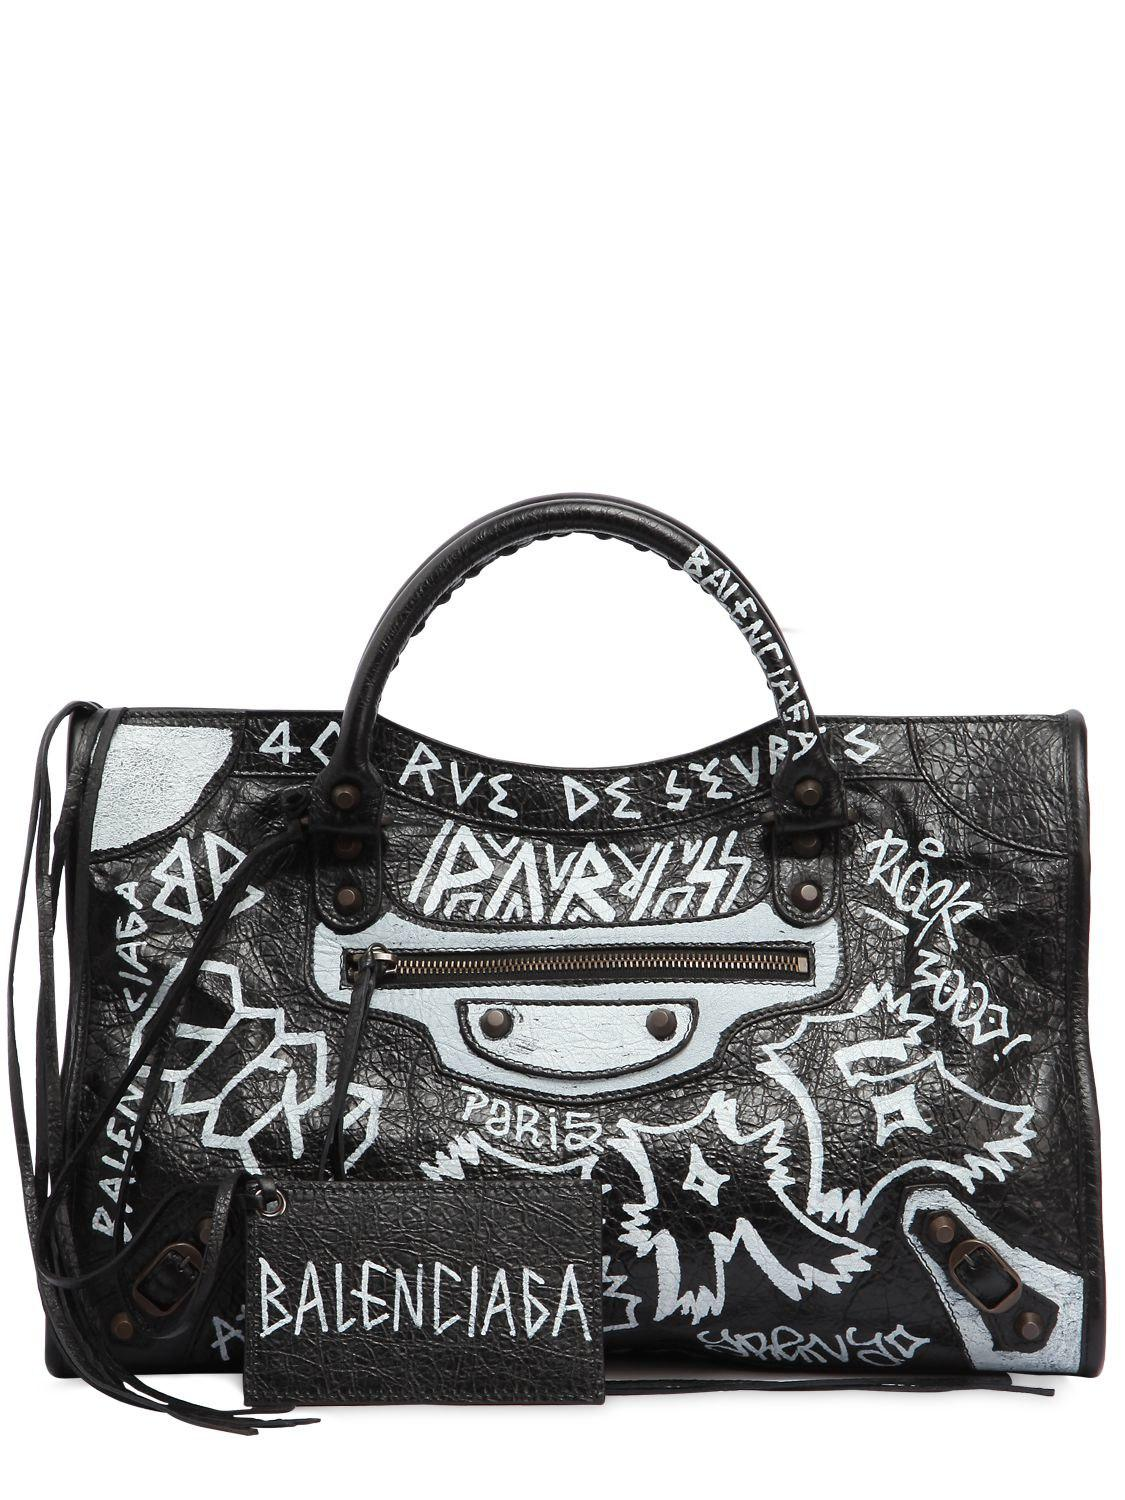 e9aac27dce Lyst - Balenciaga Classic City Graffiti Leather Bag in Black